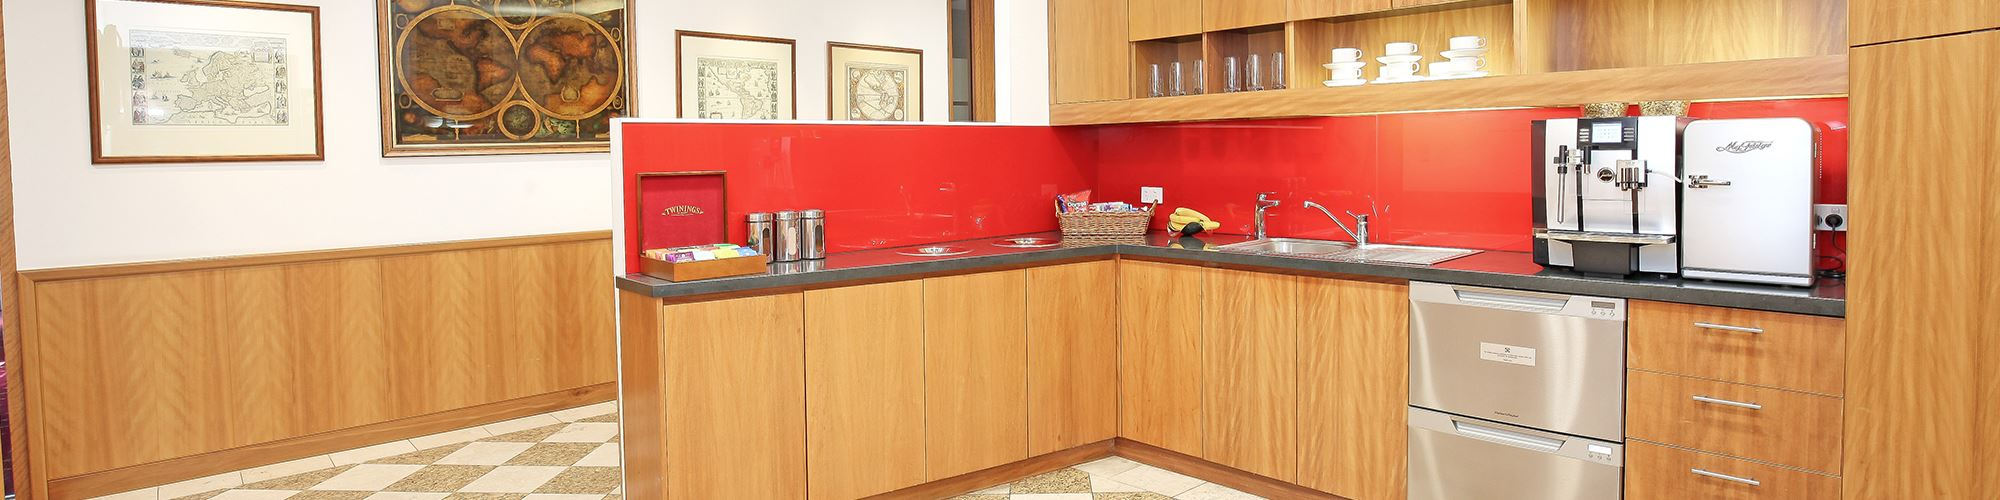 banner-standard-kitchen-2.jpg